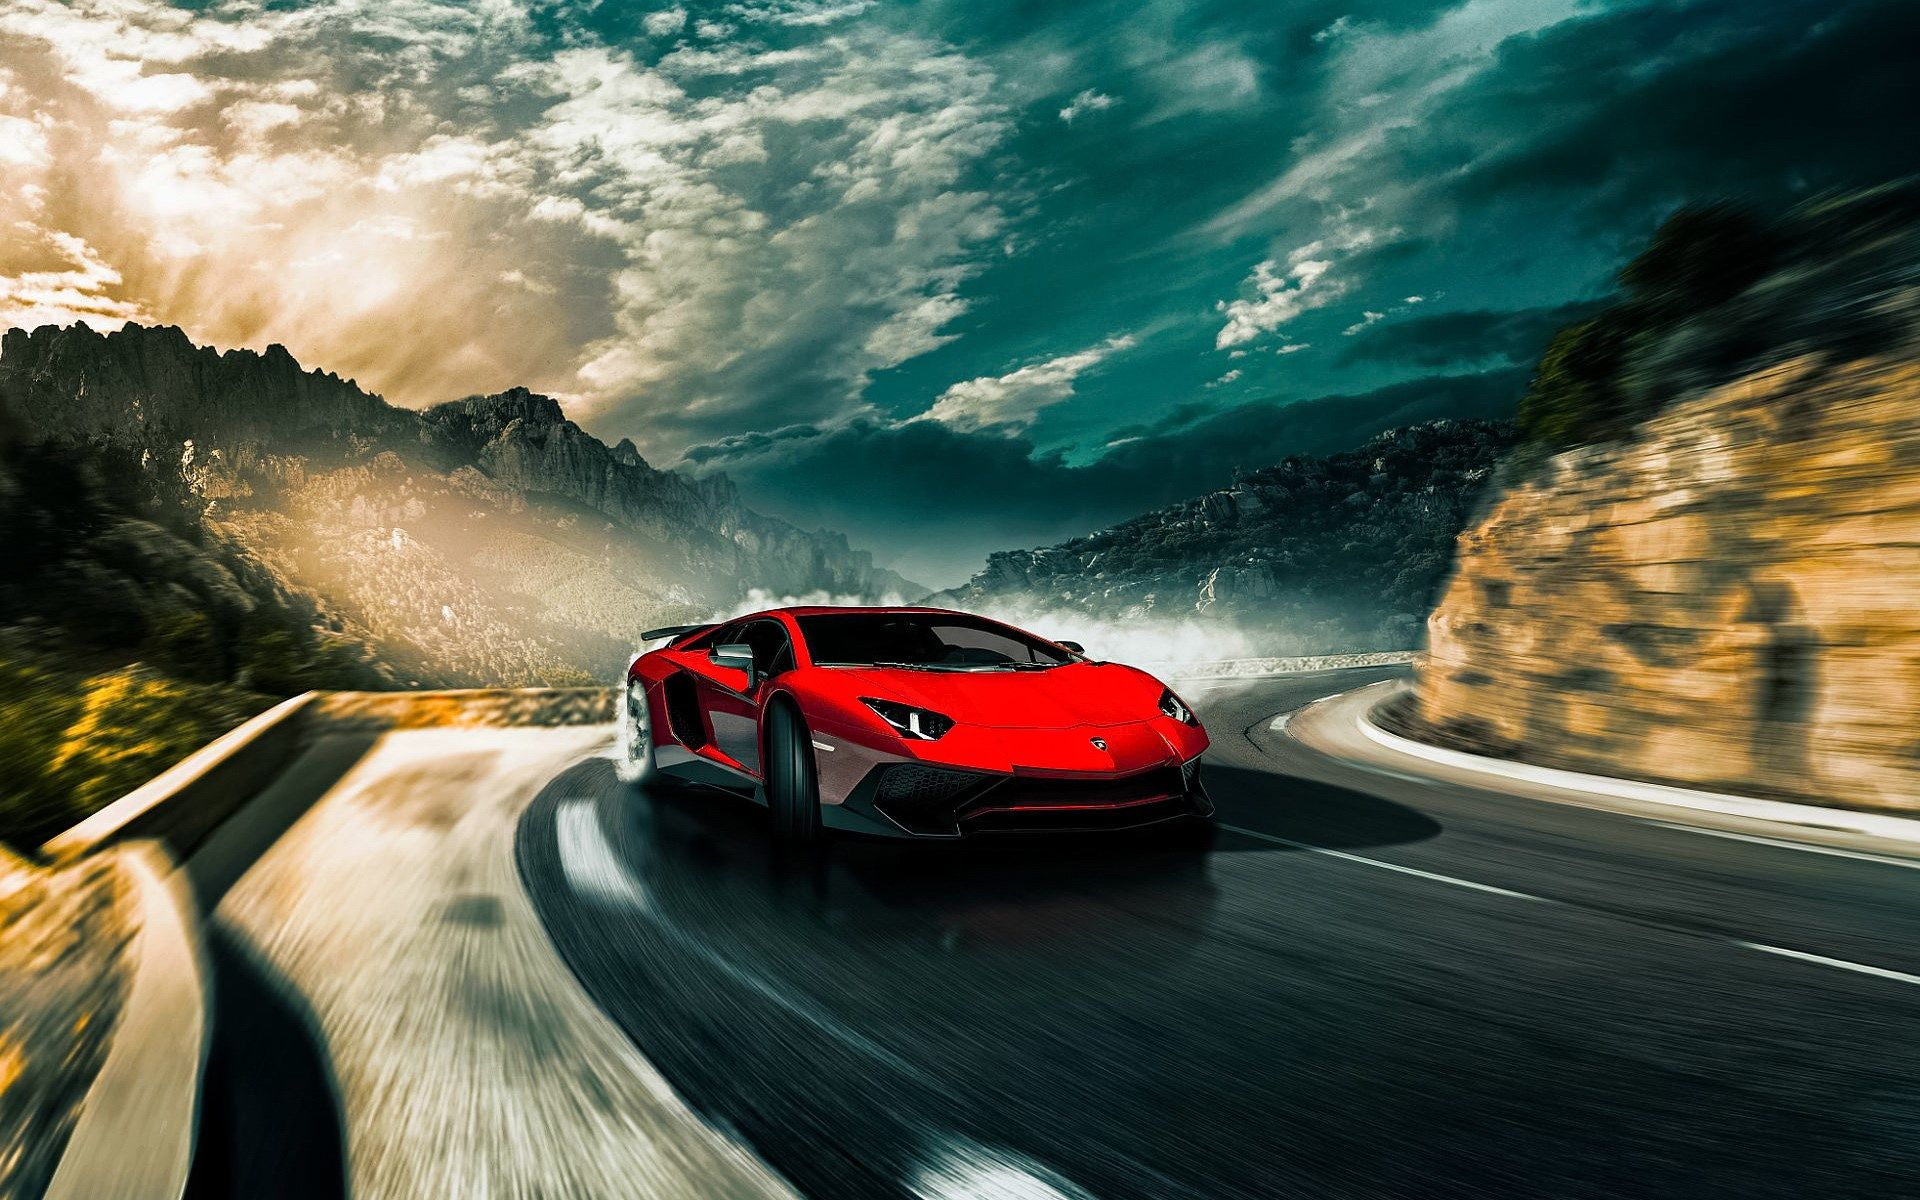 Free Awesome Lamborghini Aventador Picture By Willoughby Edwards  (2017 03 06)